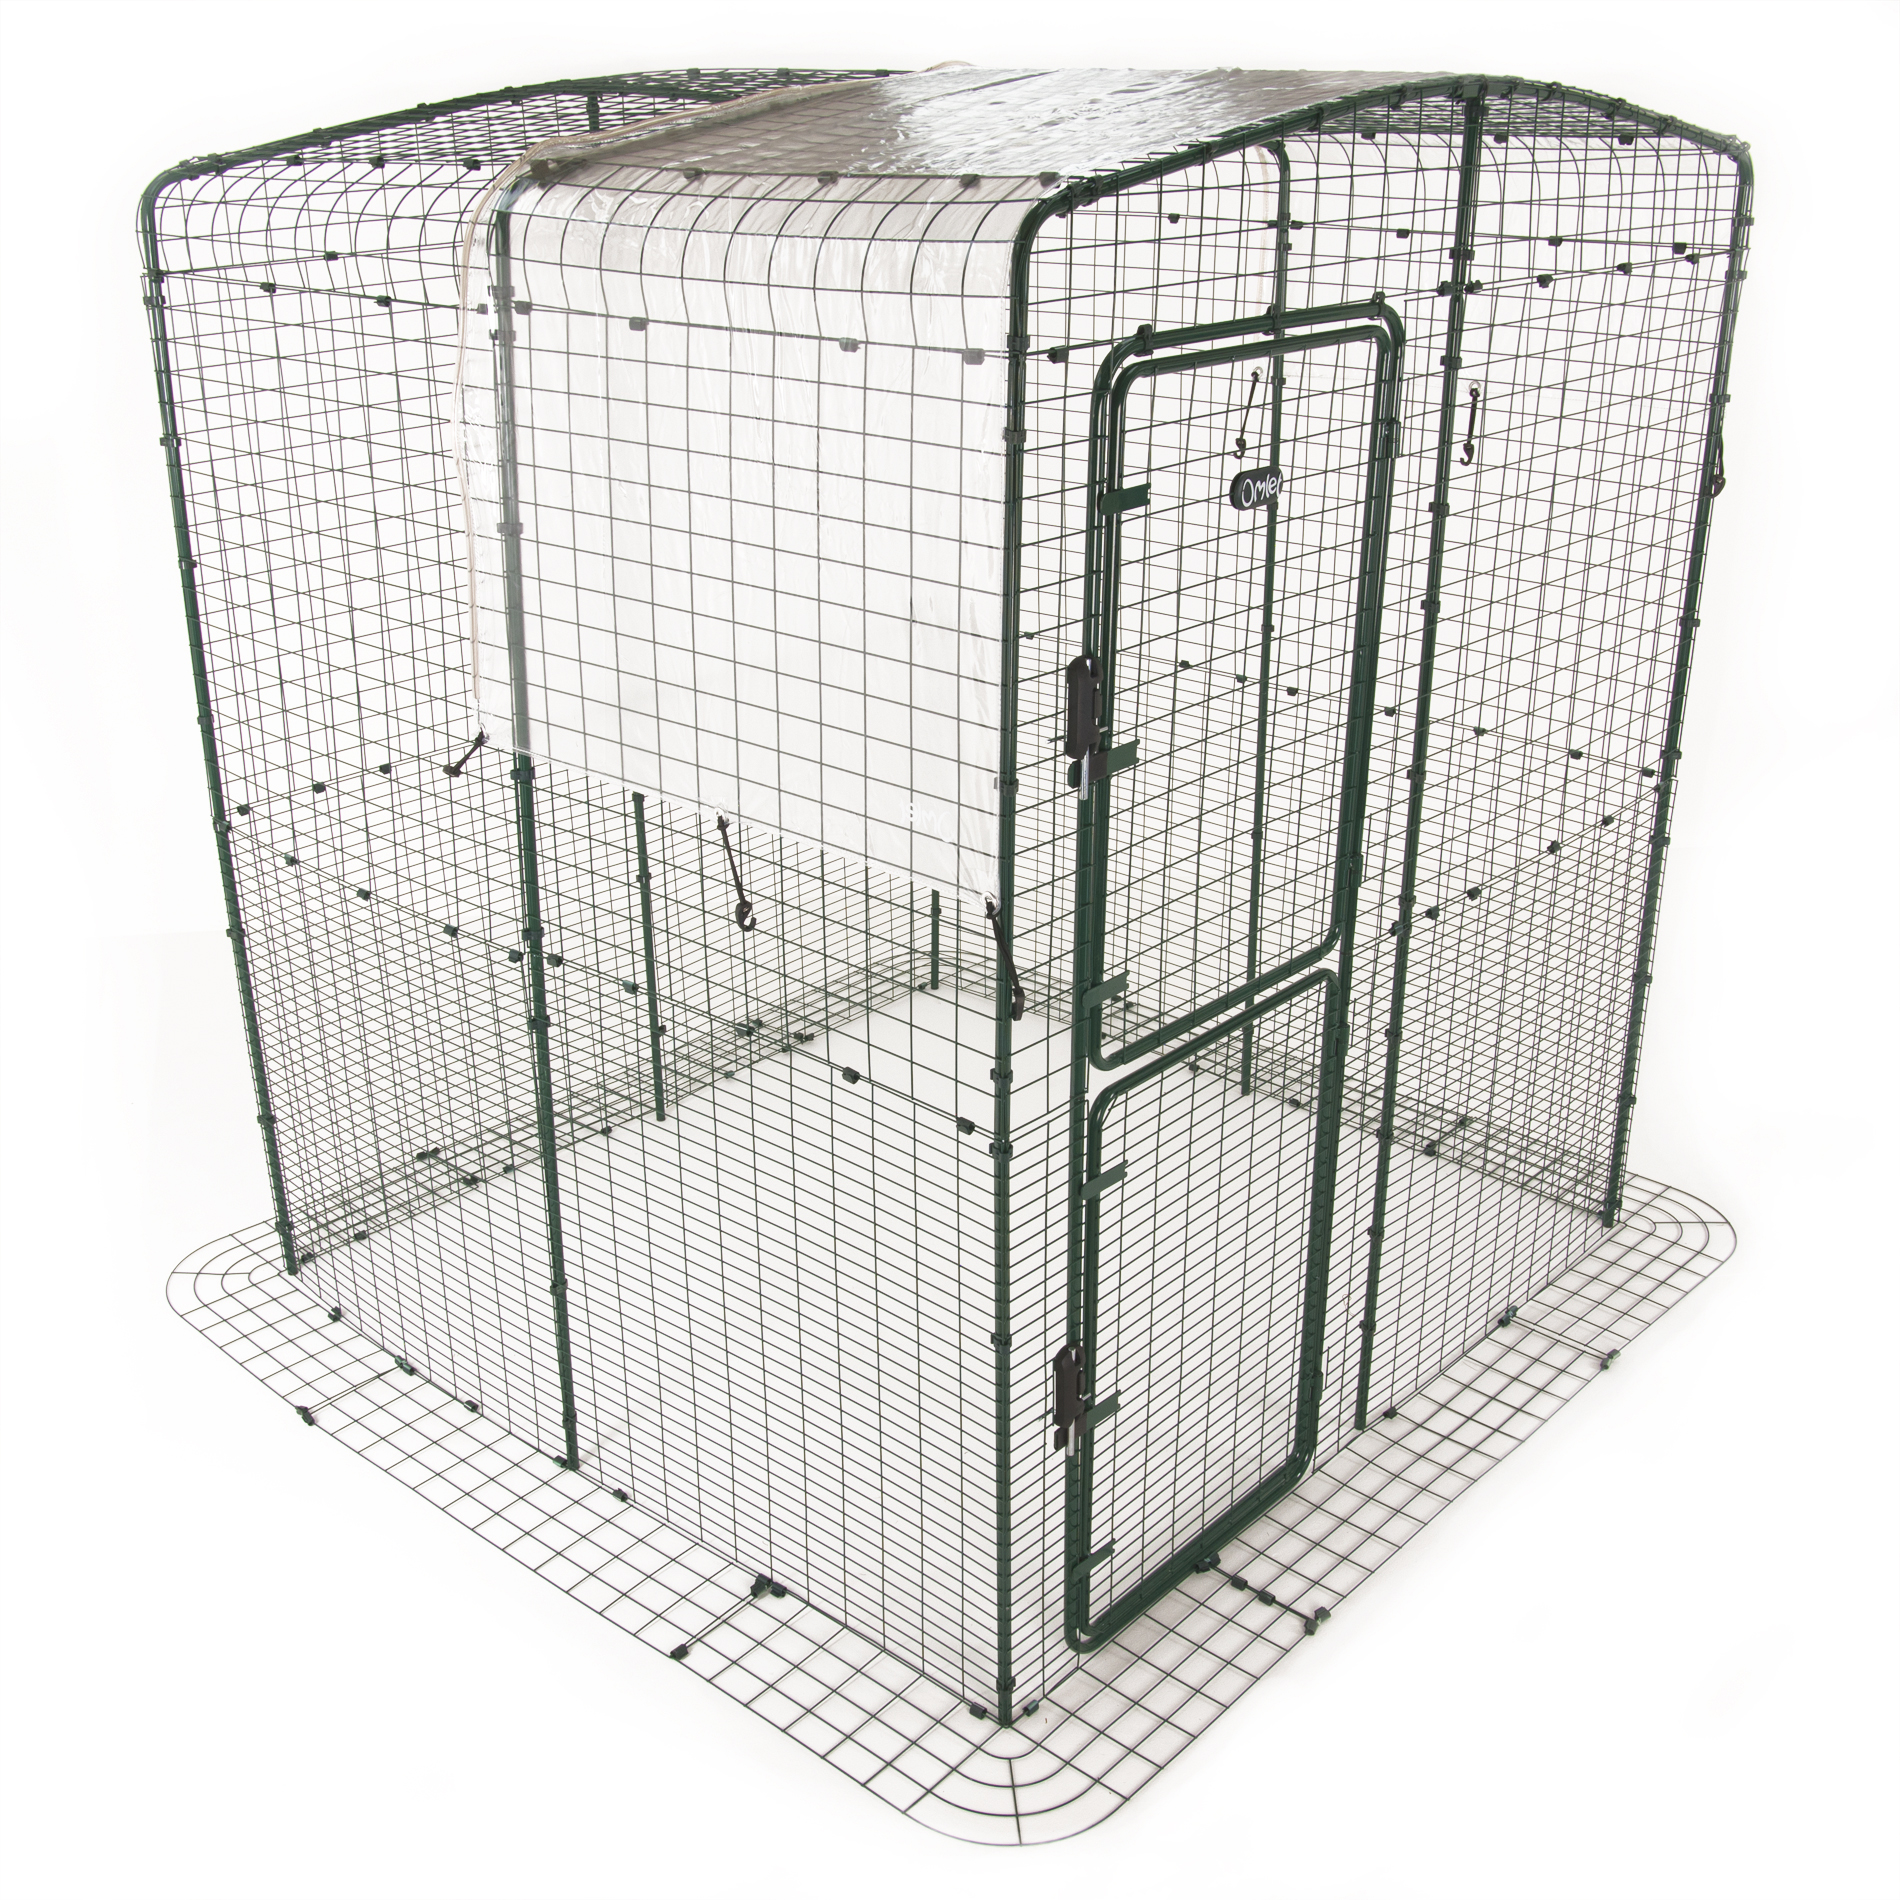 Clear Cover With Gutter Edge For Walk In Run Roof 3m Outdoor Stone Fuel Filters Weather Protection Chicken Coops Runs Fencing And